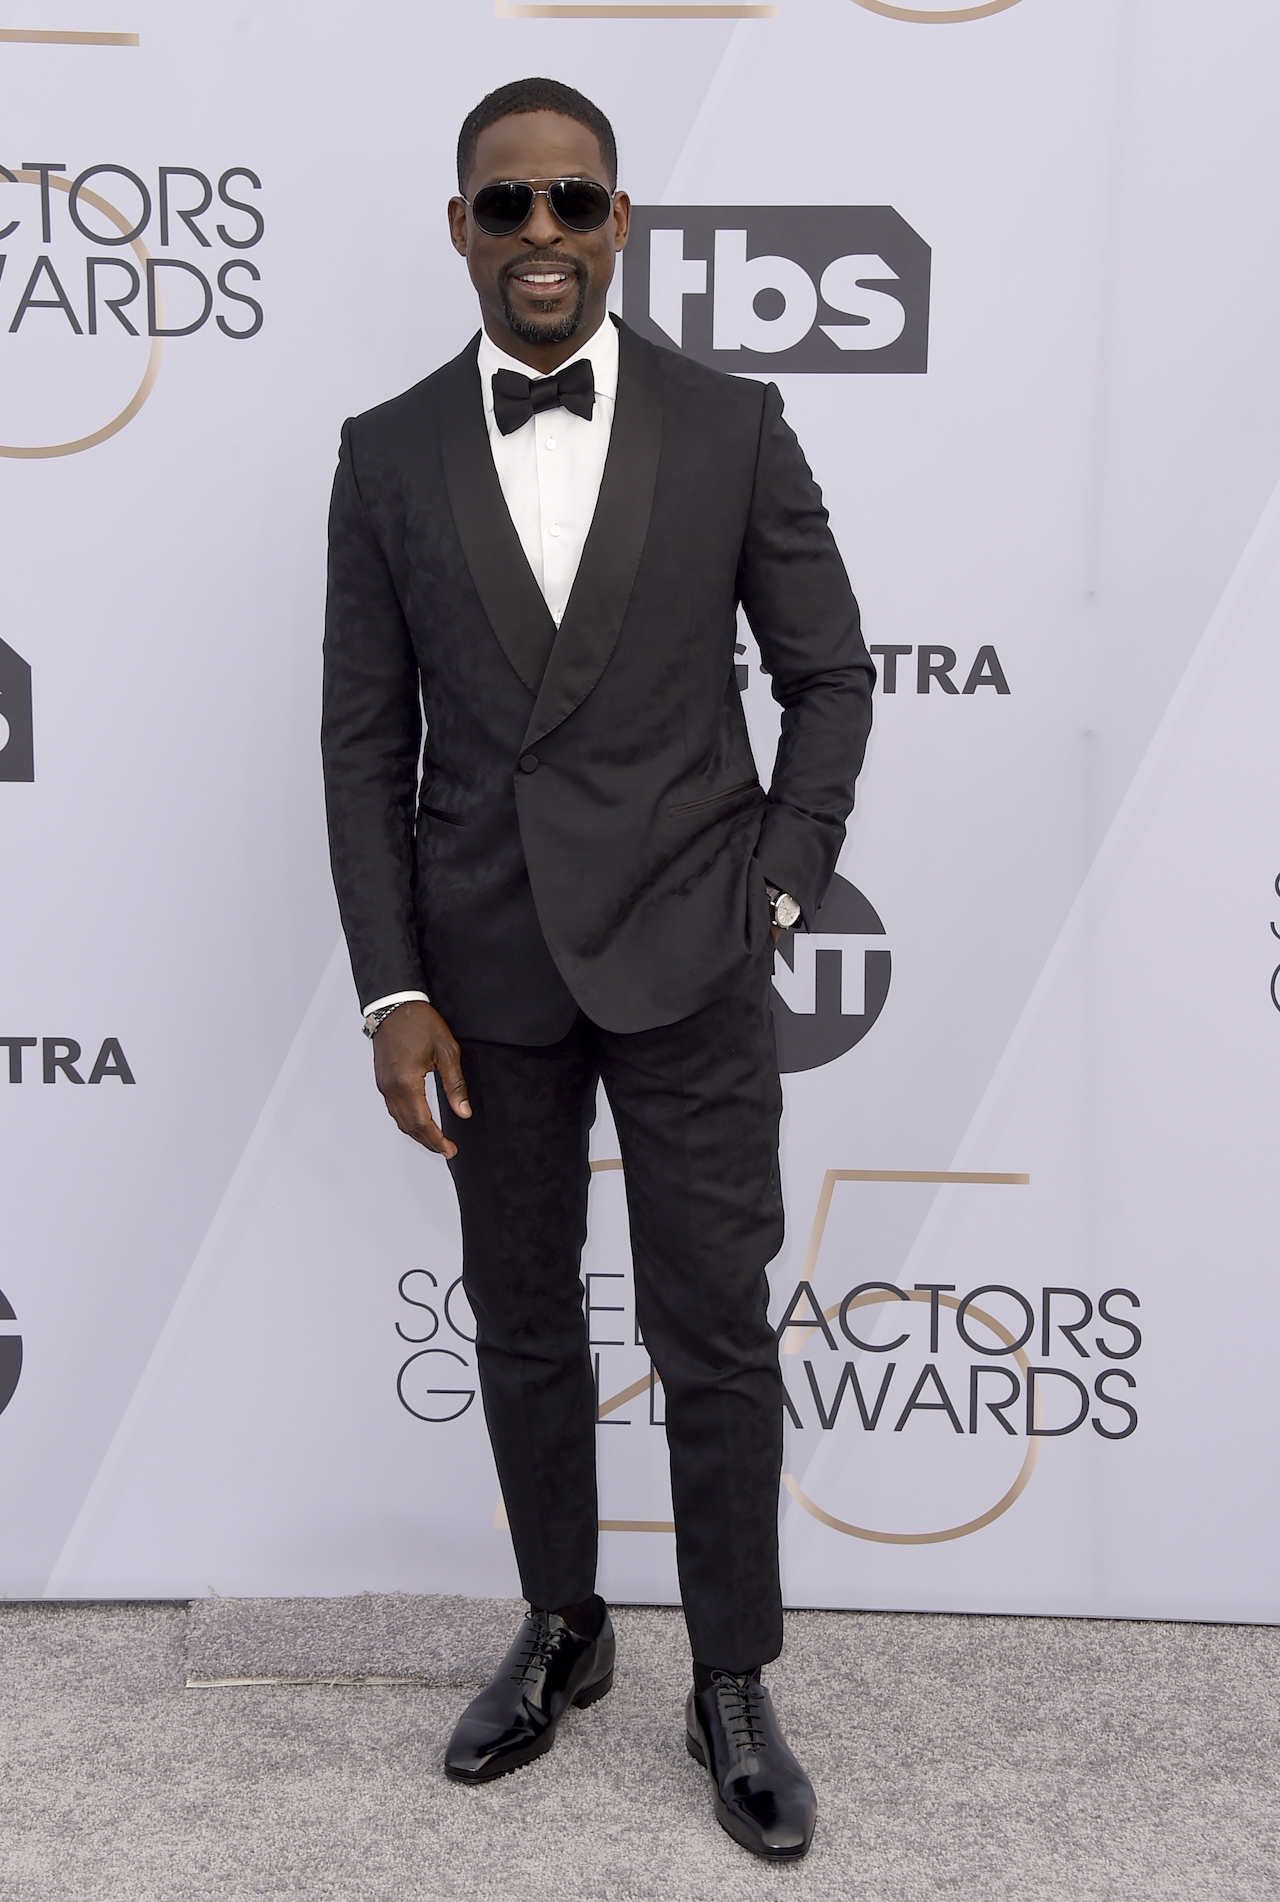 <div class='meta'><div class='origin-logo' data-origin='AP'></div><span class='caption-text' data-credit='Jordan Strauss/Invision/AP'>Sterling K. Brown arrives at the 25th annual Screen Actors Guild Awards at the Shrine Auditorium & Expo Hall on Sunday, Jan. 27, 2019, in Los Angeles.</span></div>